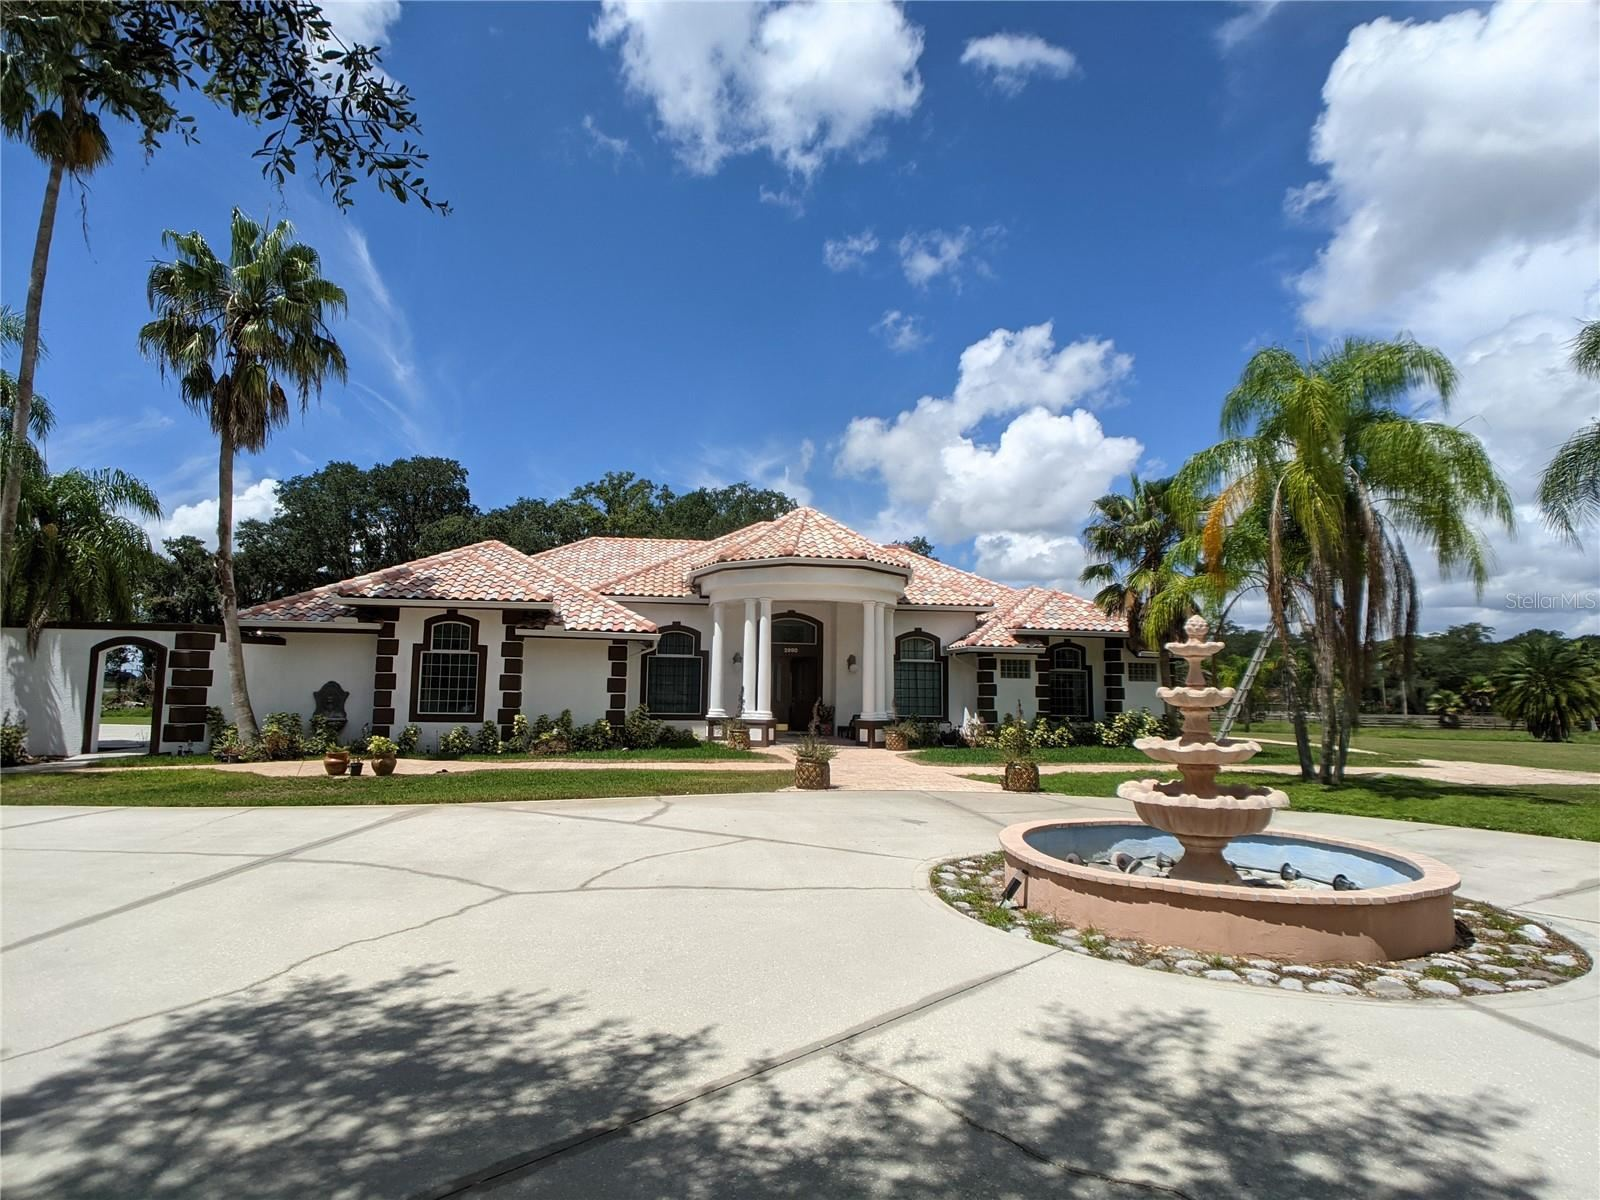 2960 FRONTIER DRIVE, Kissimmee, FL 34744 - #: O5966089